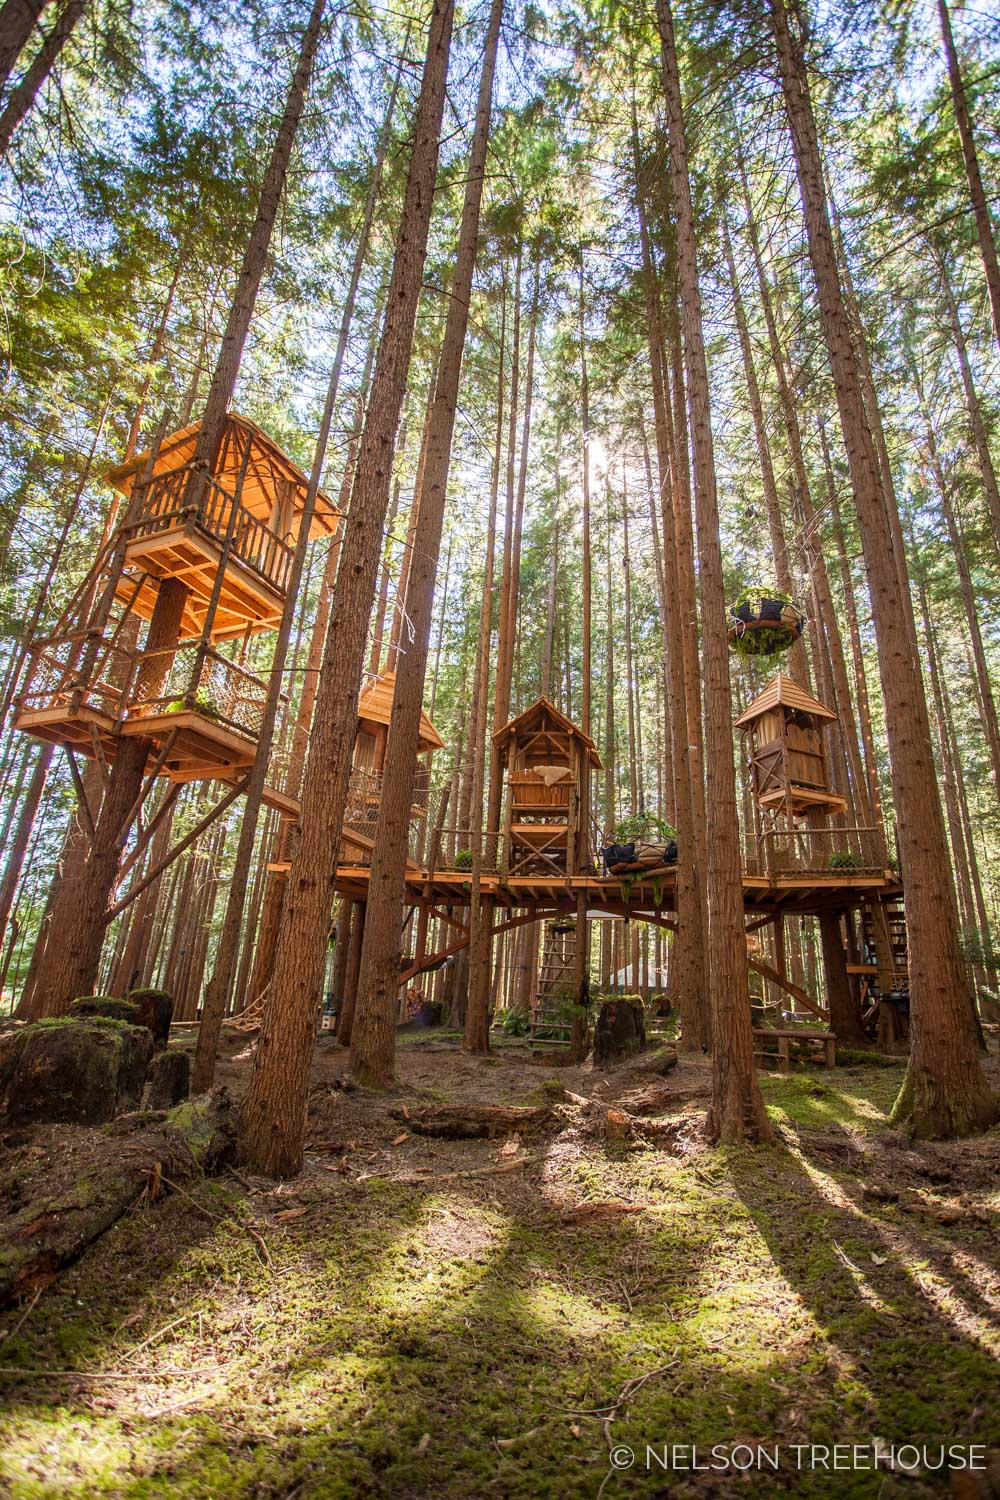 Treetop-Movie-Theater-2018-Nelson-Treehouse-191.jpg